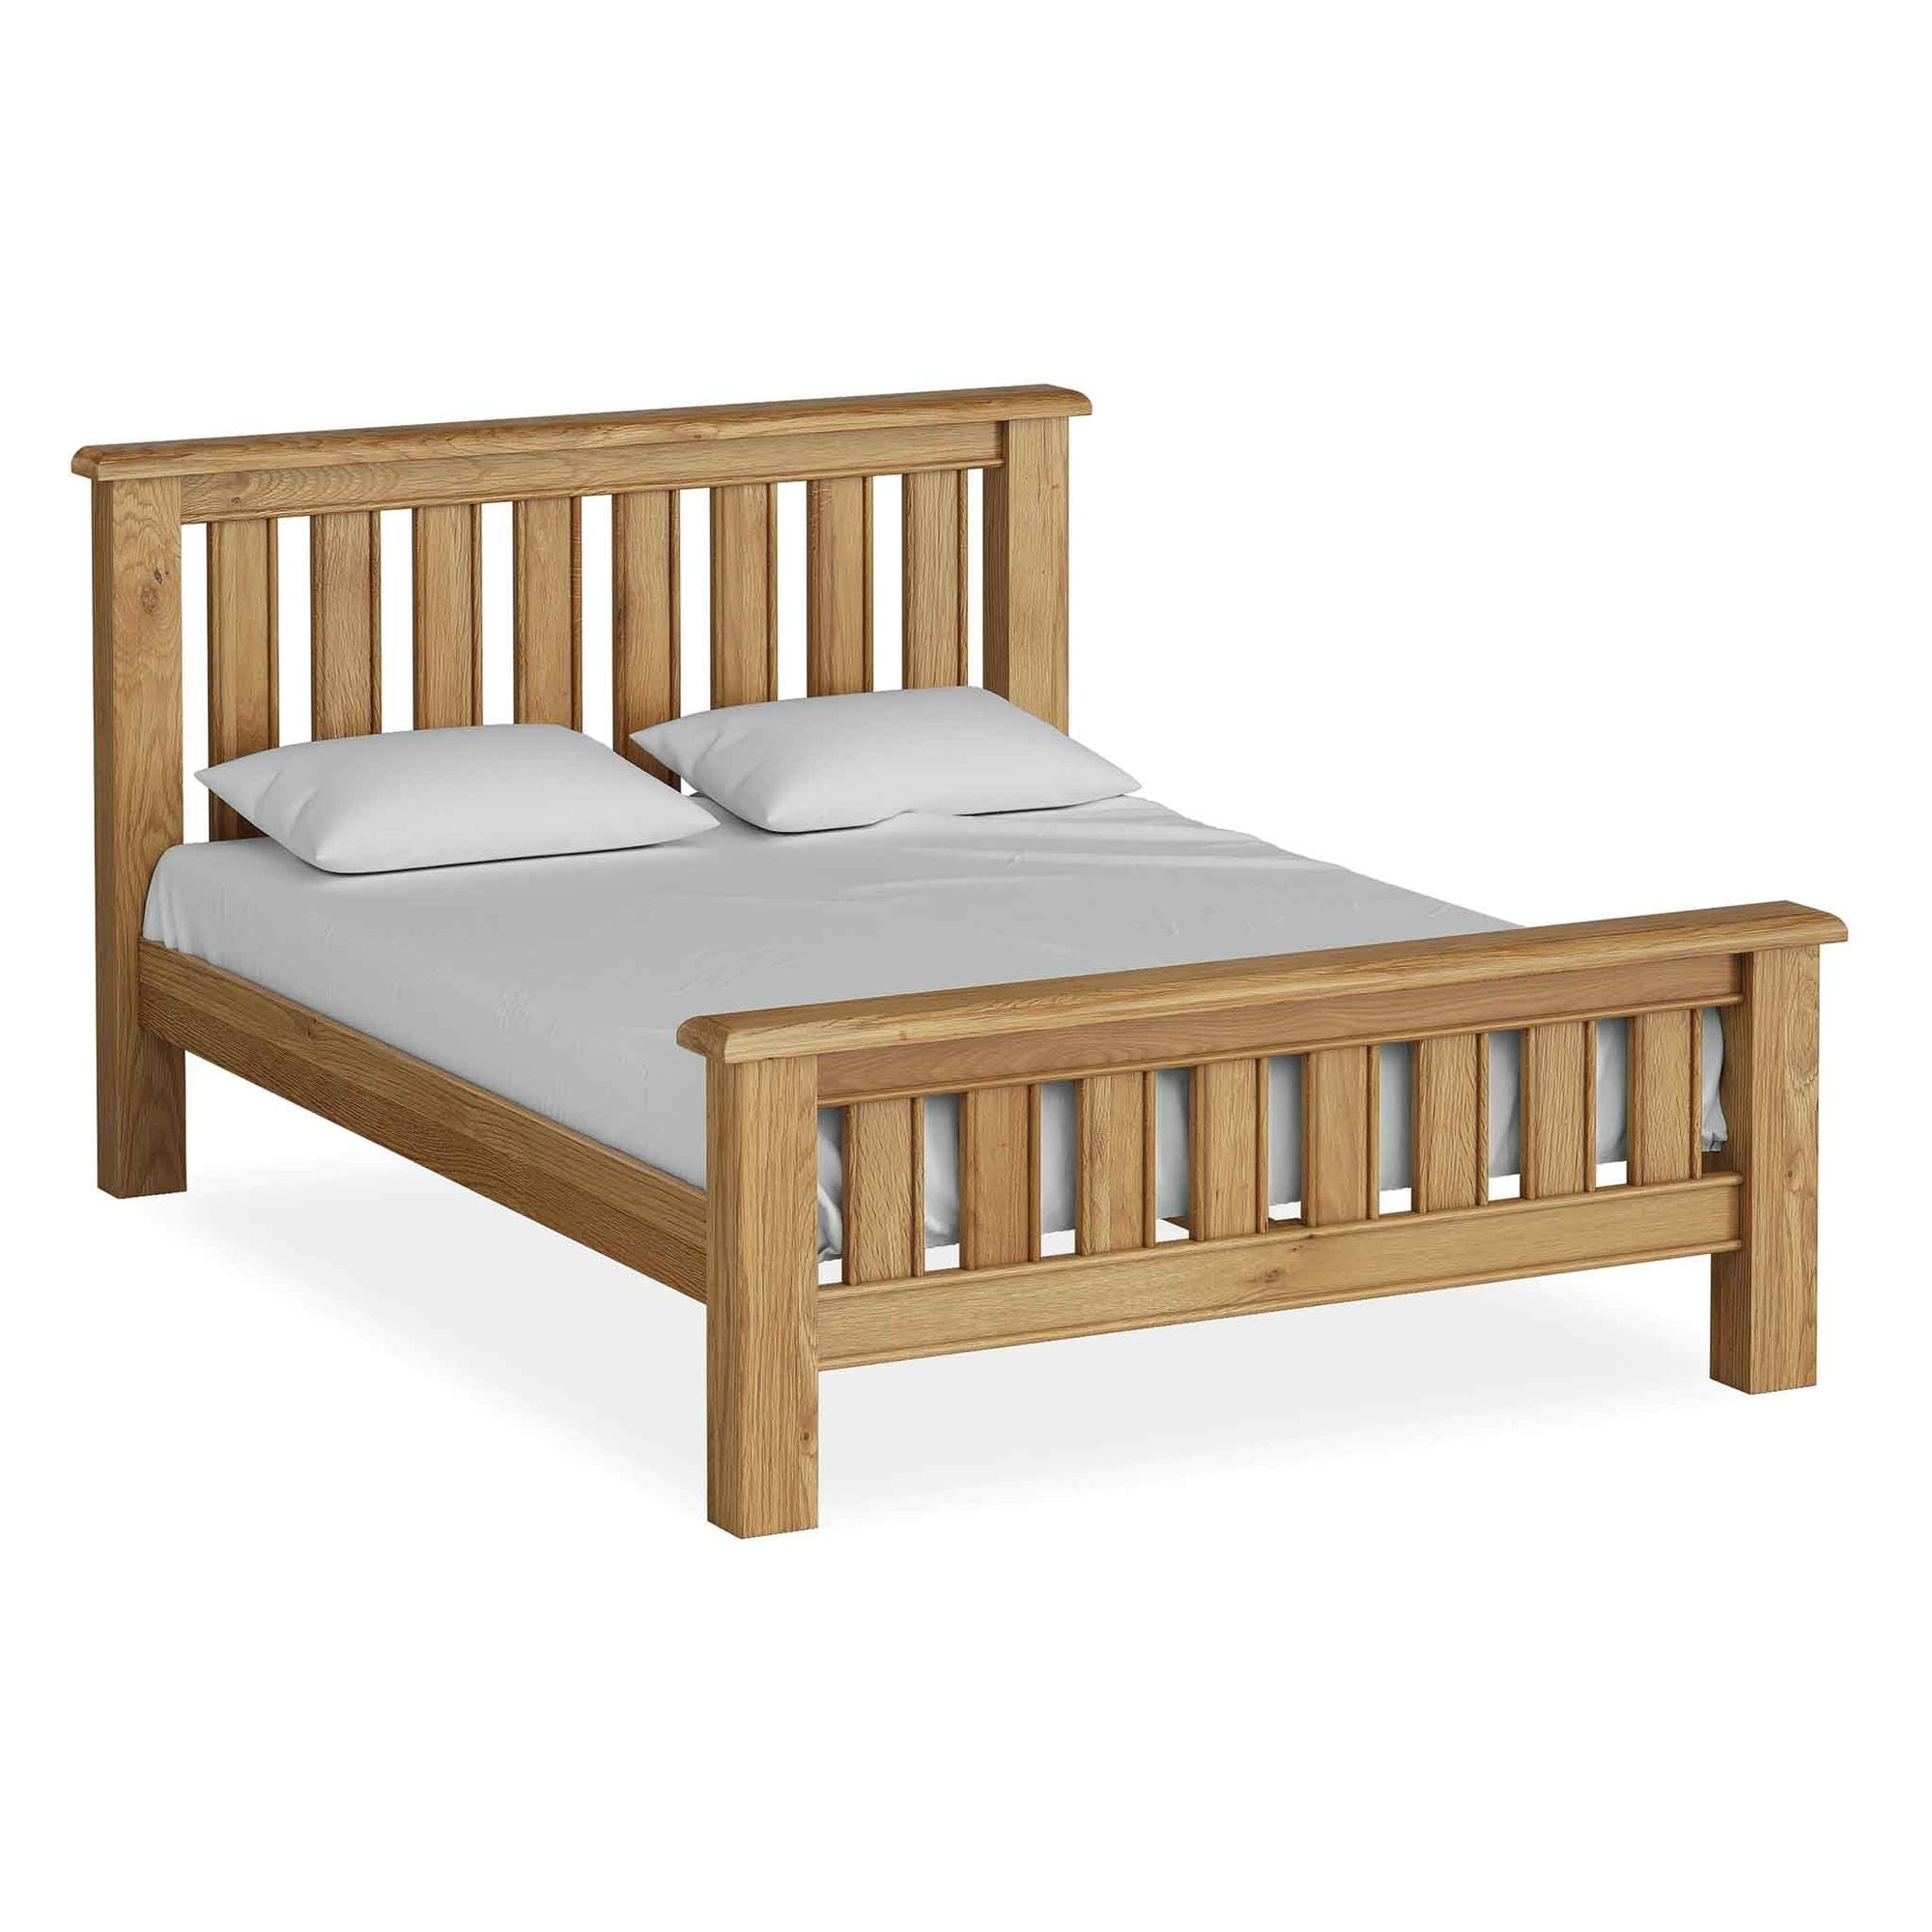 The Canterbury 5 ft King Size Oak Bed Frame from Roseland Furniture